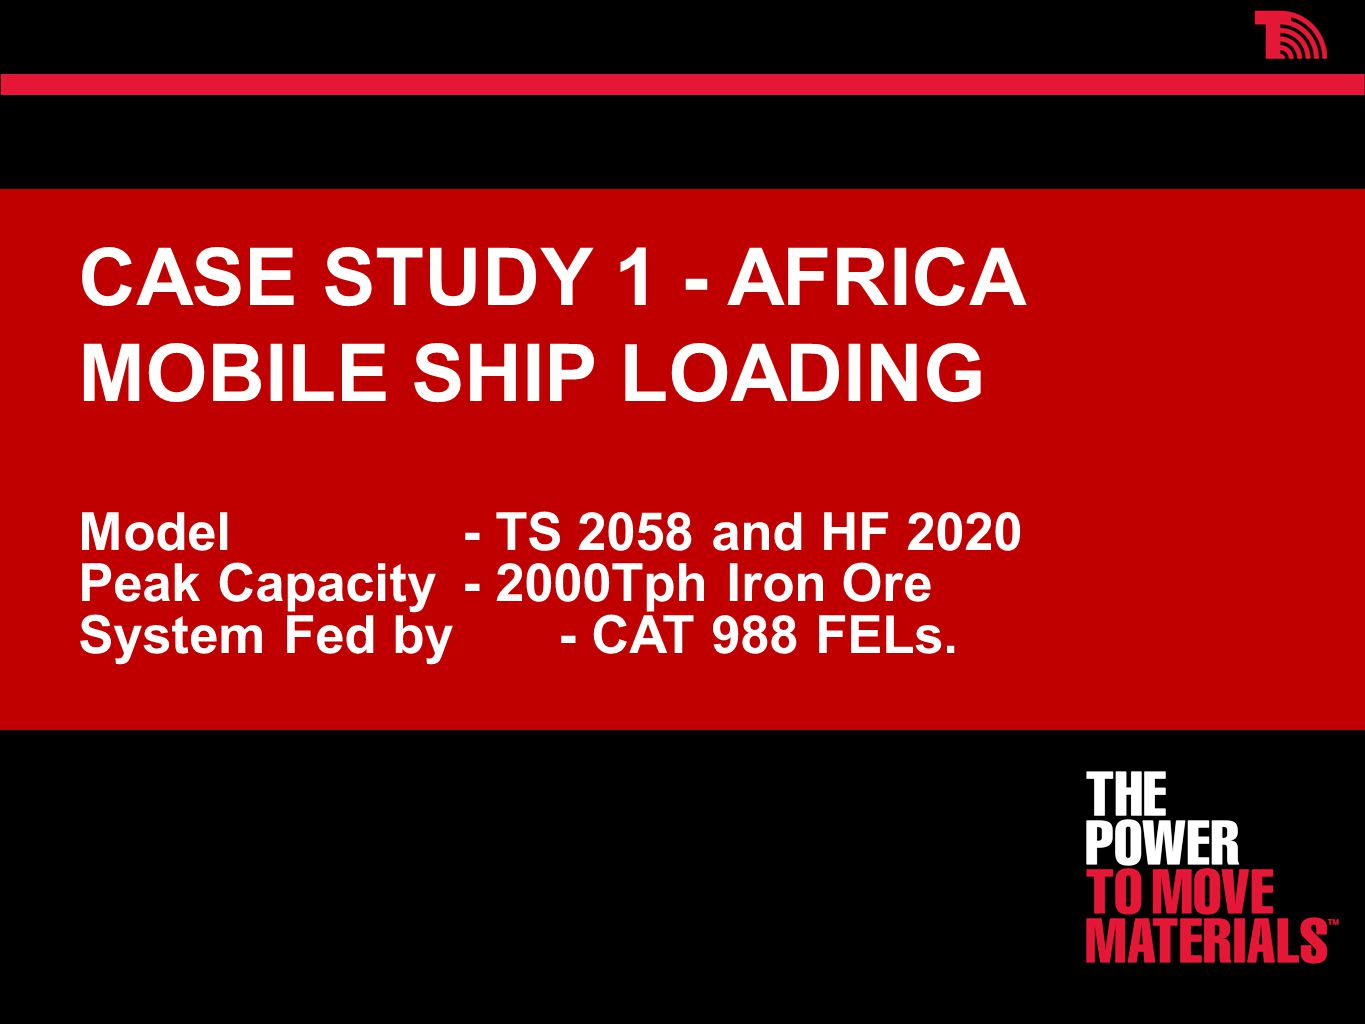 CASE STUDY 1 - AFRICA MOBILE SHIP LOADING Model - TS 2058 and HF 2020 Peak Capacity - 2000Tph Iron Ore System Fed by - CAT 988 FELs.